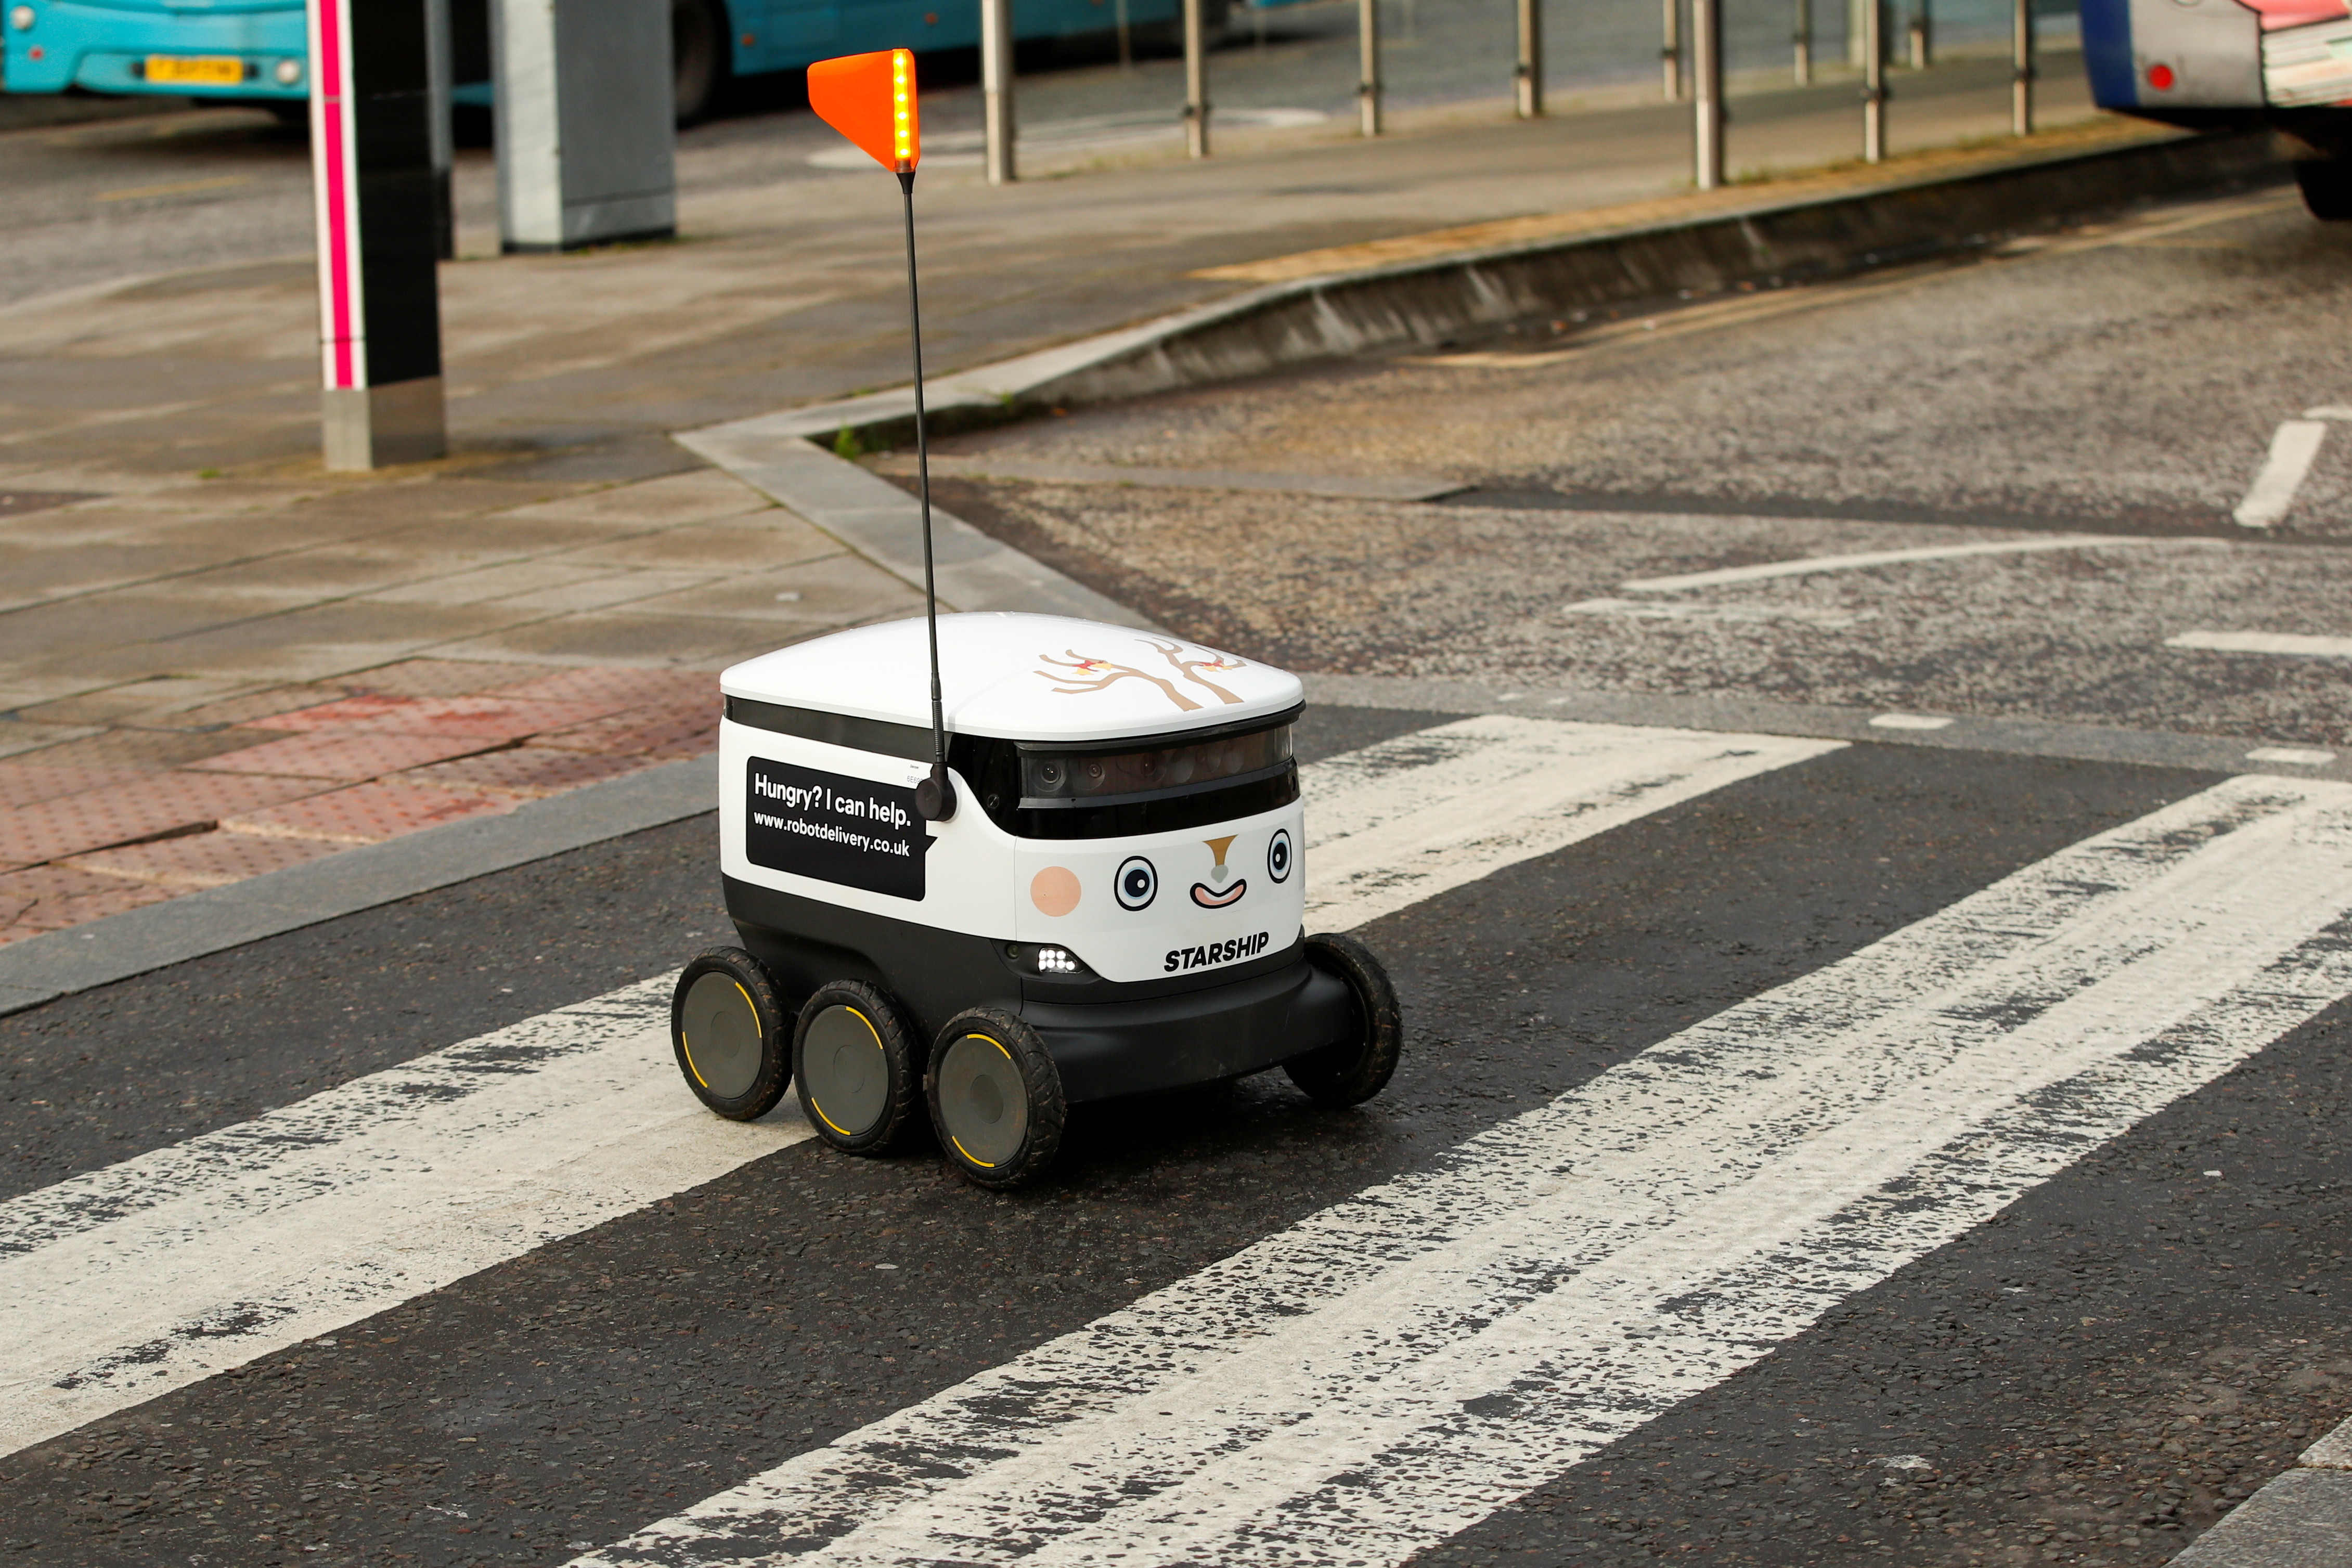 A Starship delivery robot crosses a street amid the coronavirus disease (COVID-19) outbreak, in Milton Keynes, Britain, December 16, 2020. REUTERS/Andrew Boyers - RC2COK9QLPDL